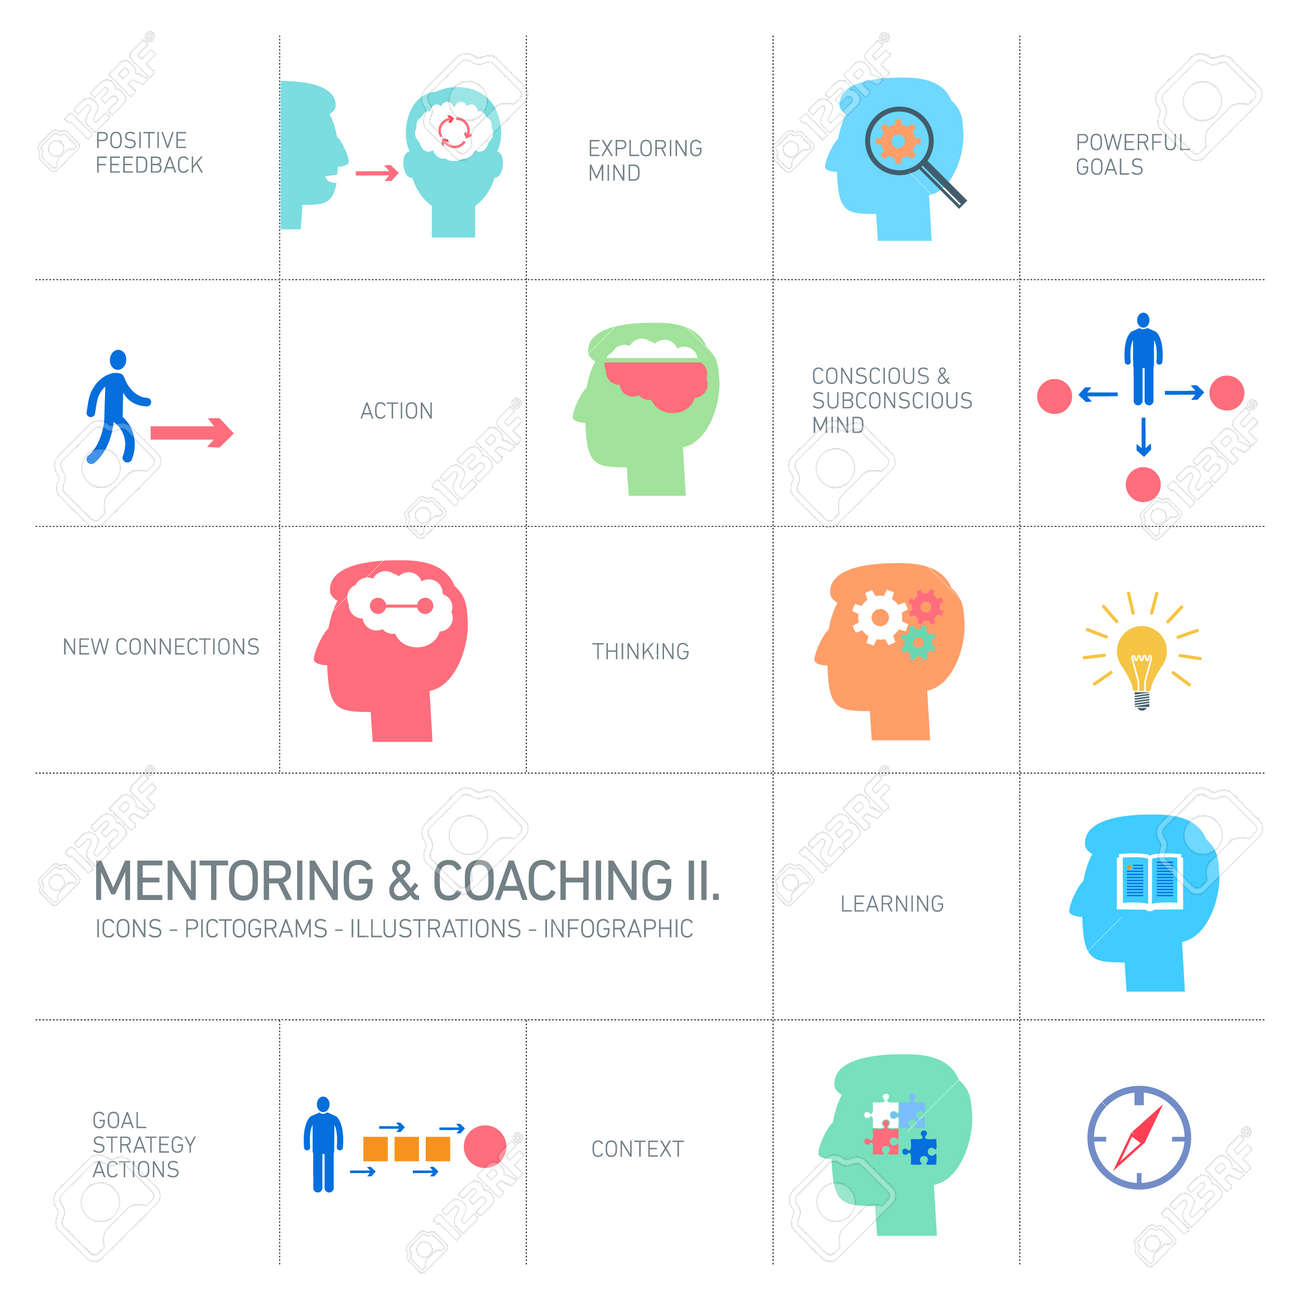 mentoring and coaching soft skills icons set modern flat design vector mentoring and coaching soft skills icons set modern flat design colorful ilustrations infographic isolated on white